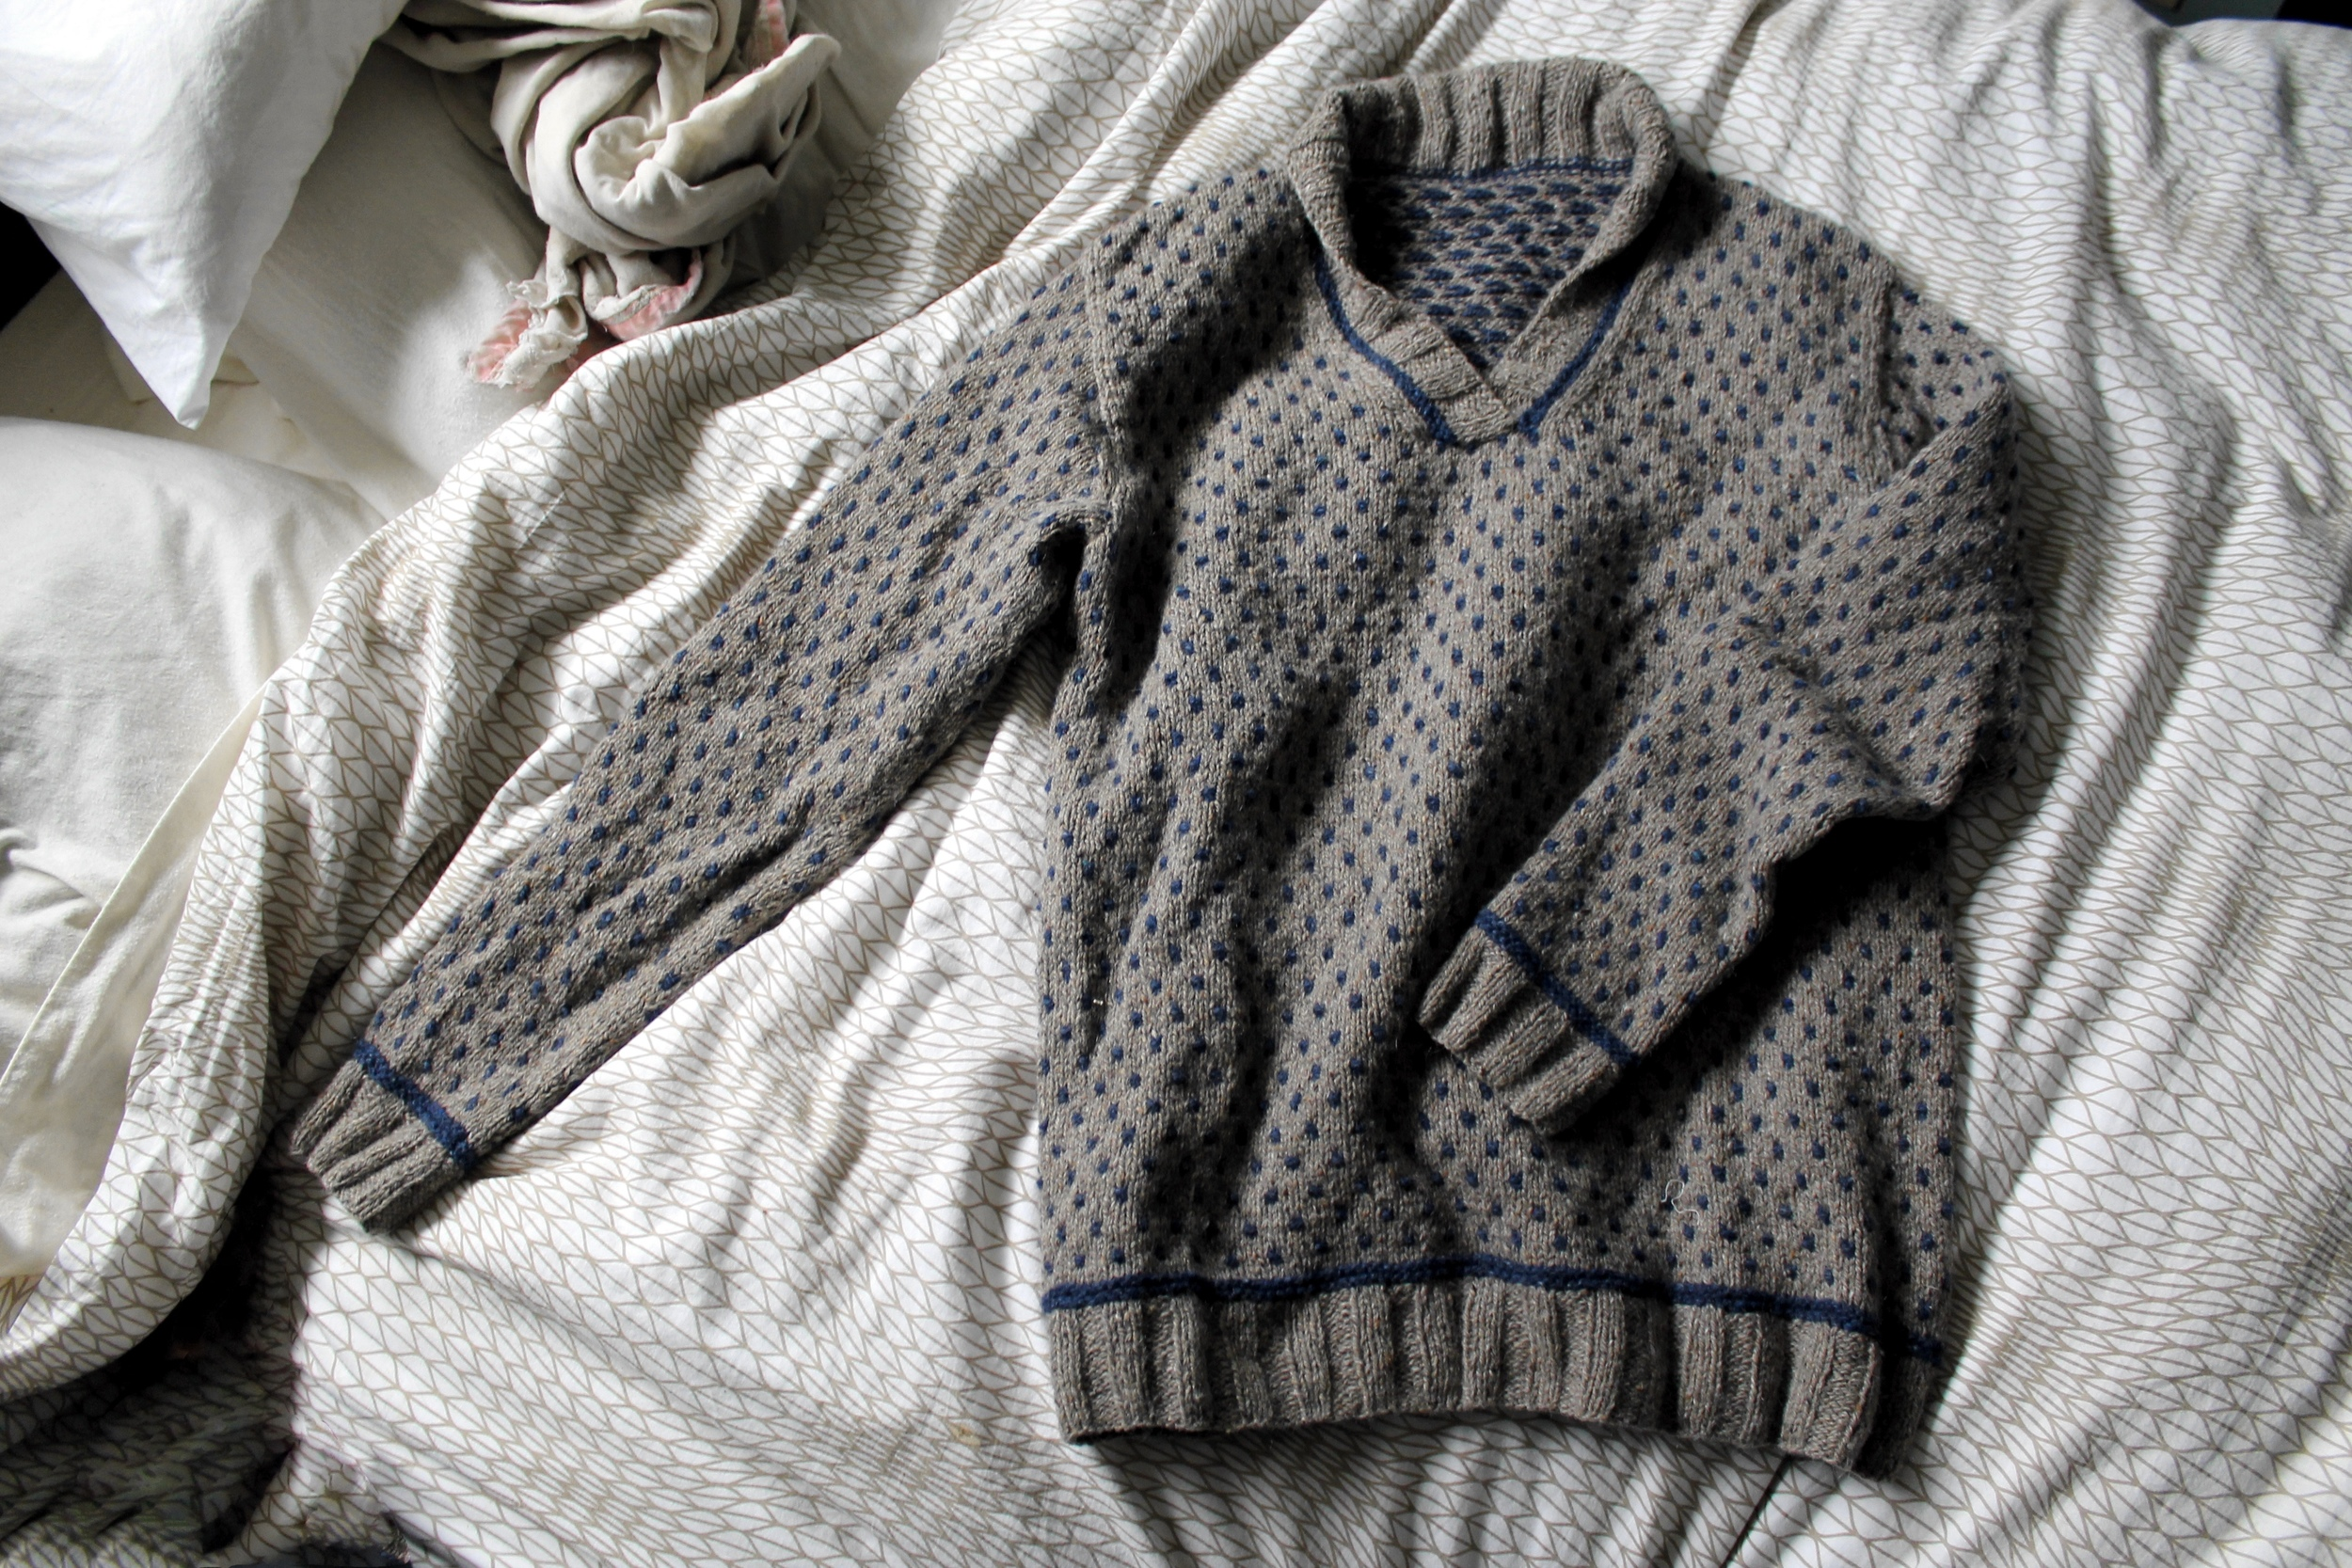 Warwick sweater made with light brown and navy tweed yarn, laying on a bed